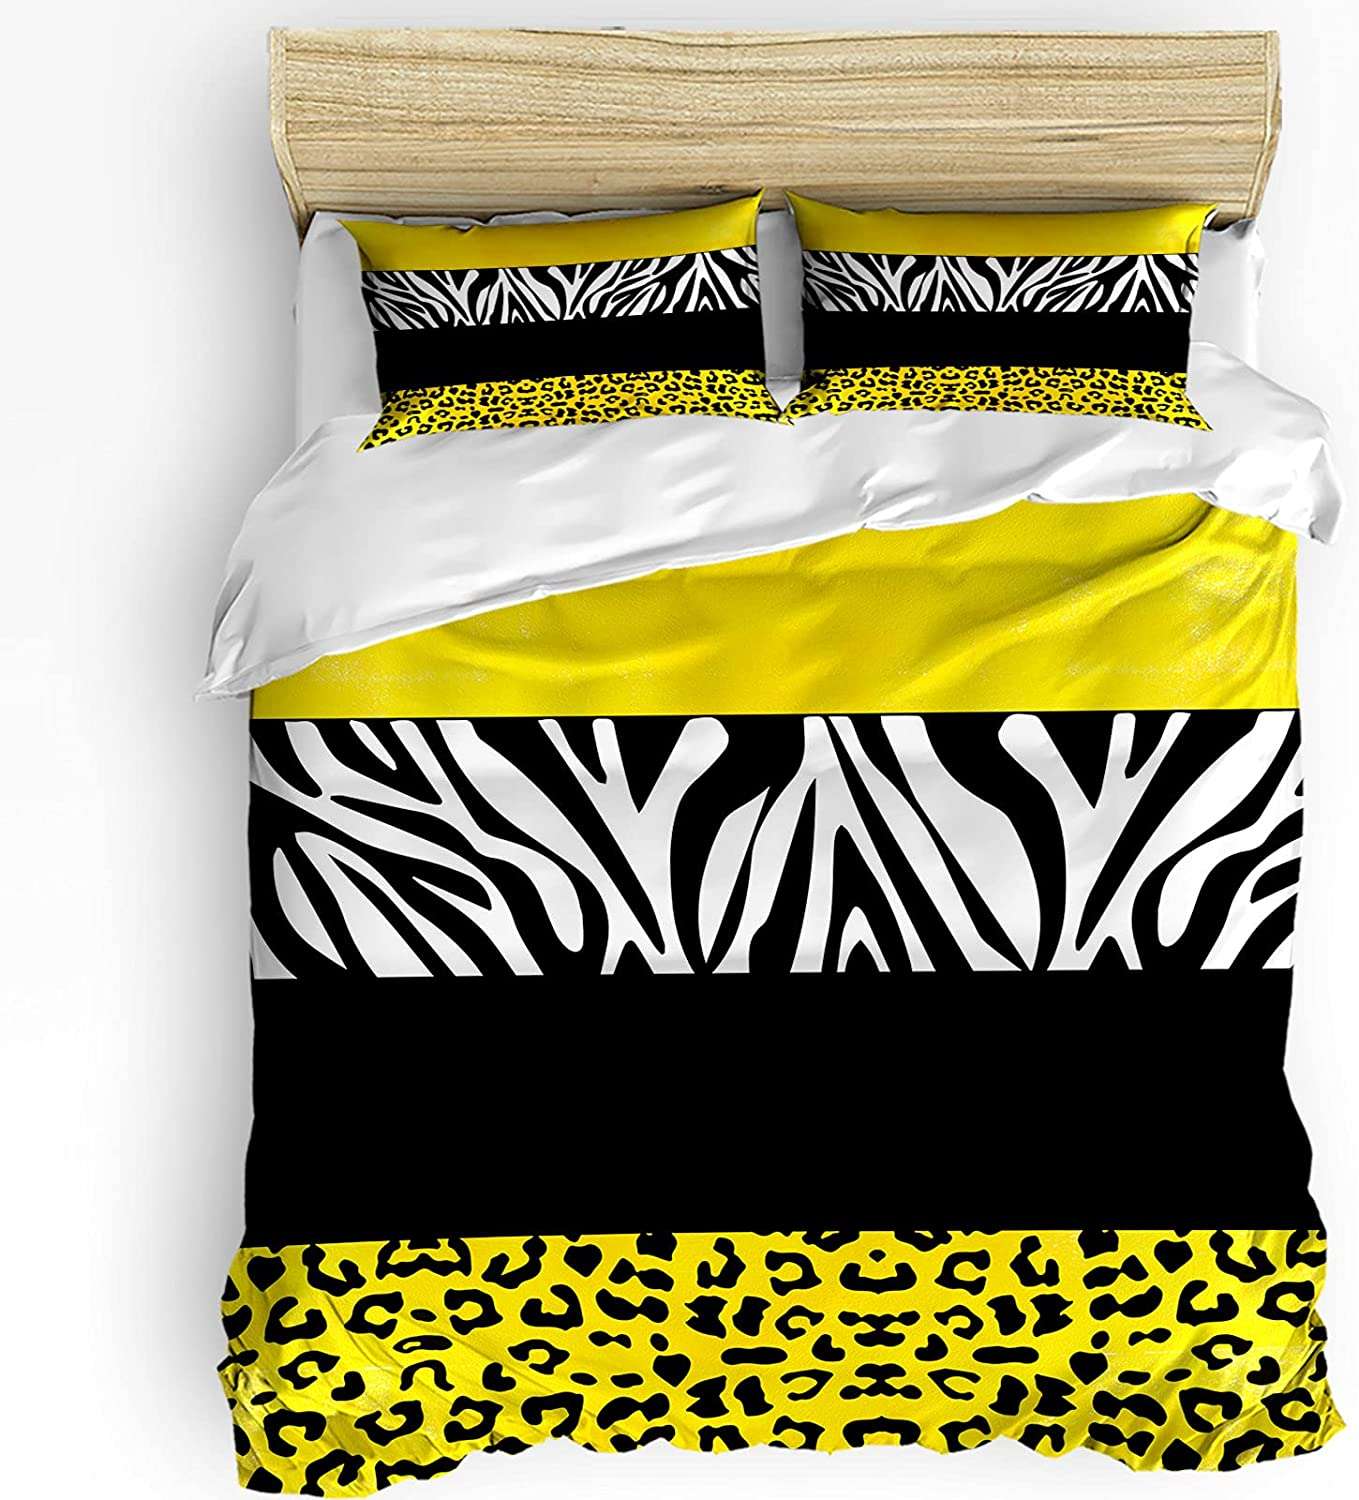 Funy Decor Bedding Duvet Surprise price Cover Set 3 Black Yellow Sale Special Price Pieces and Bed